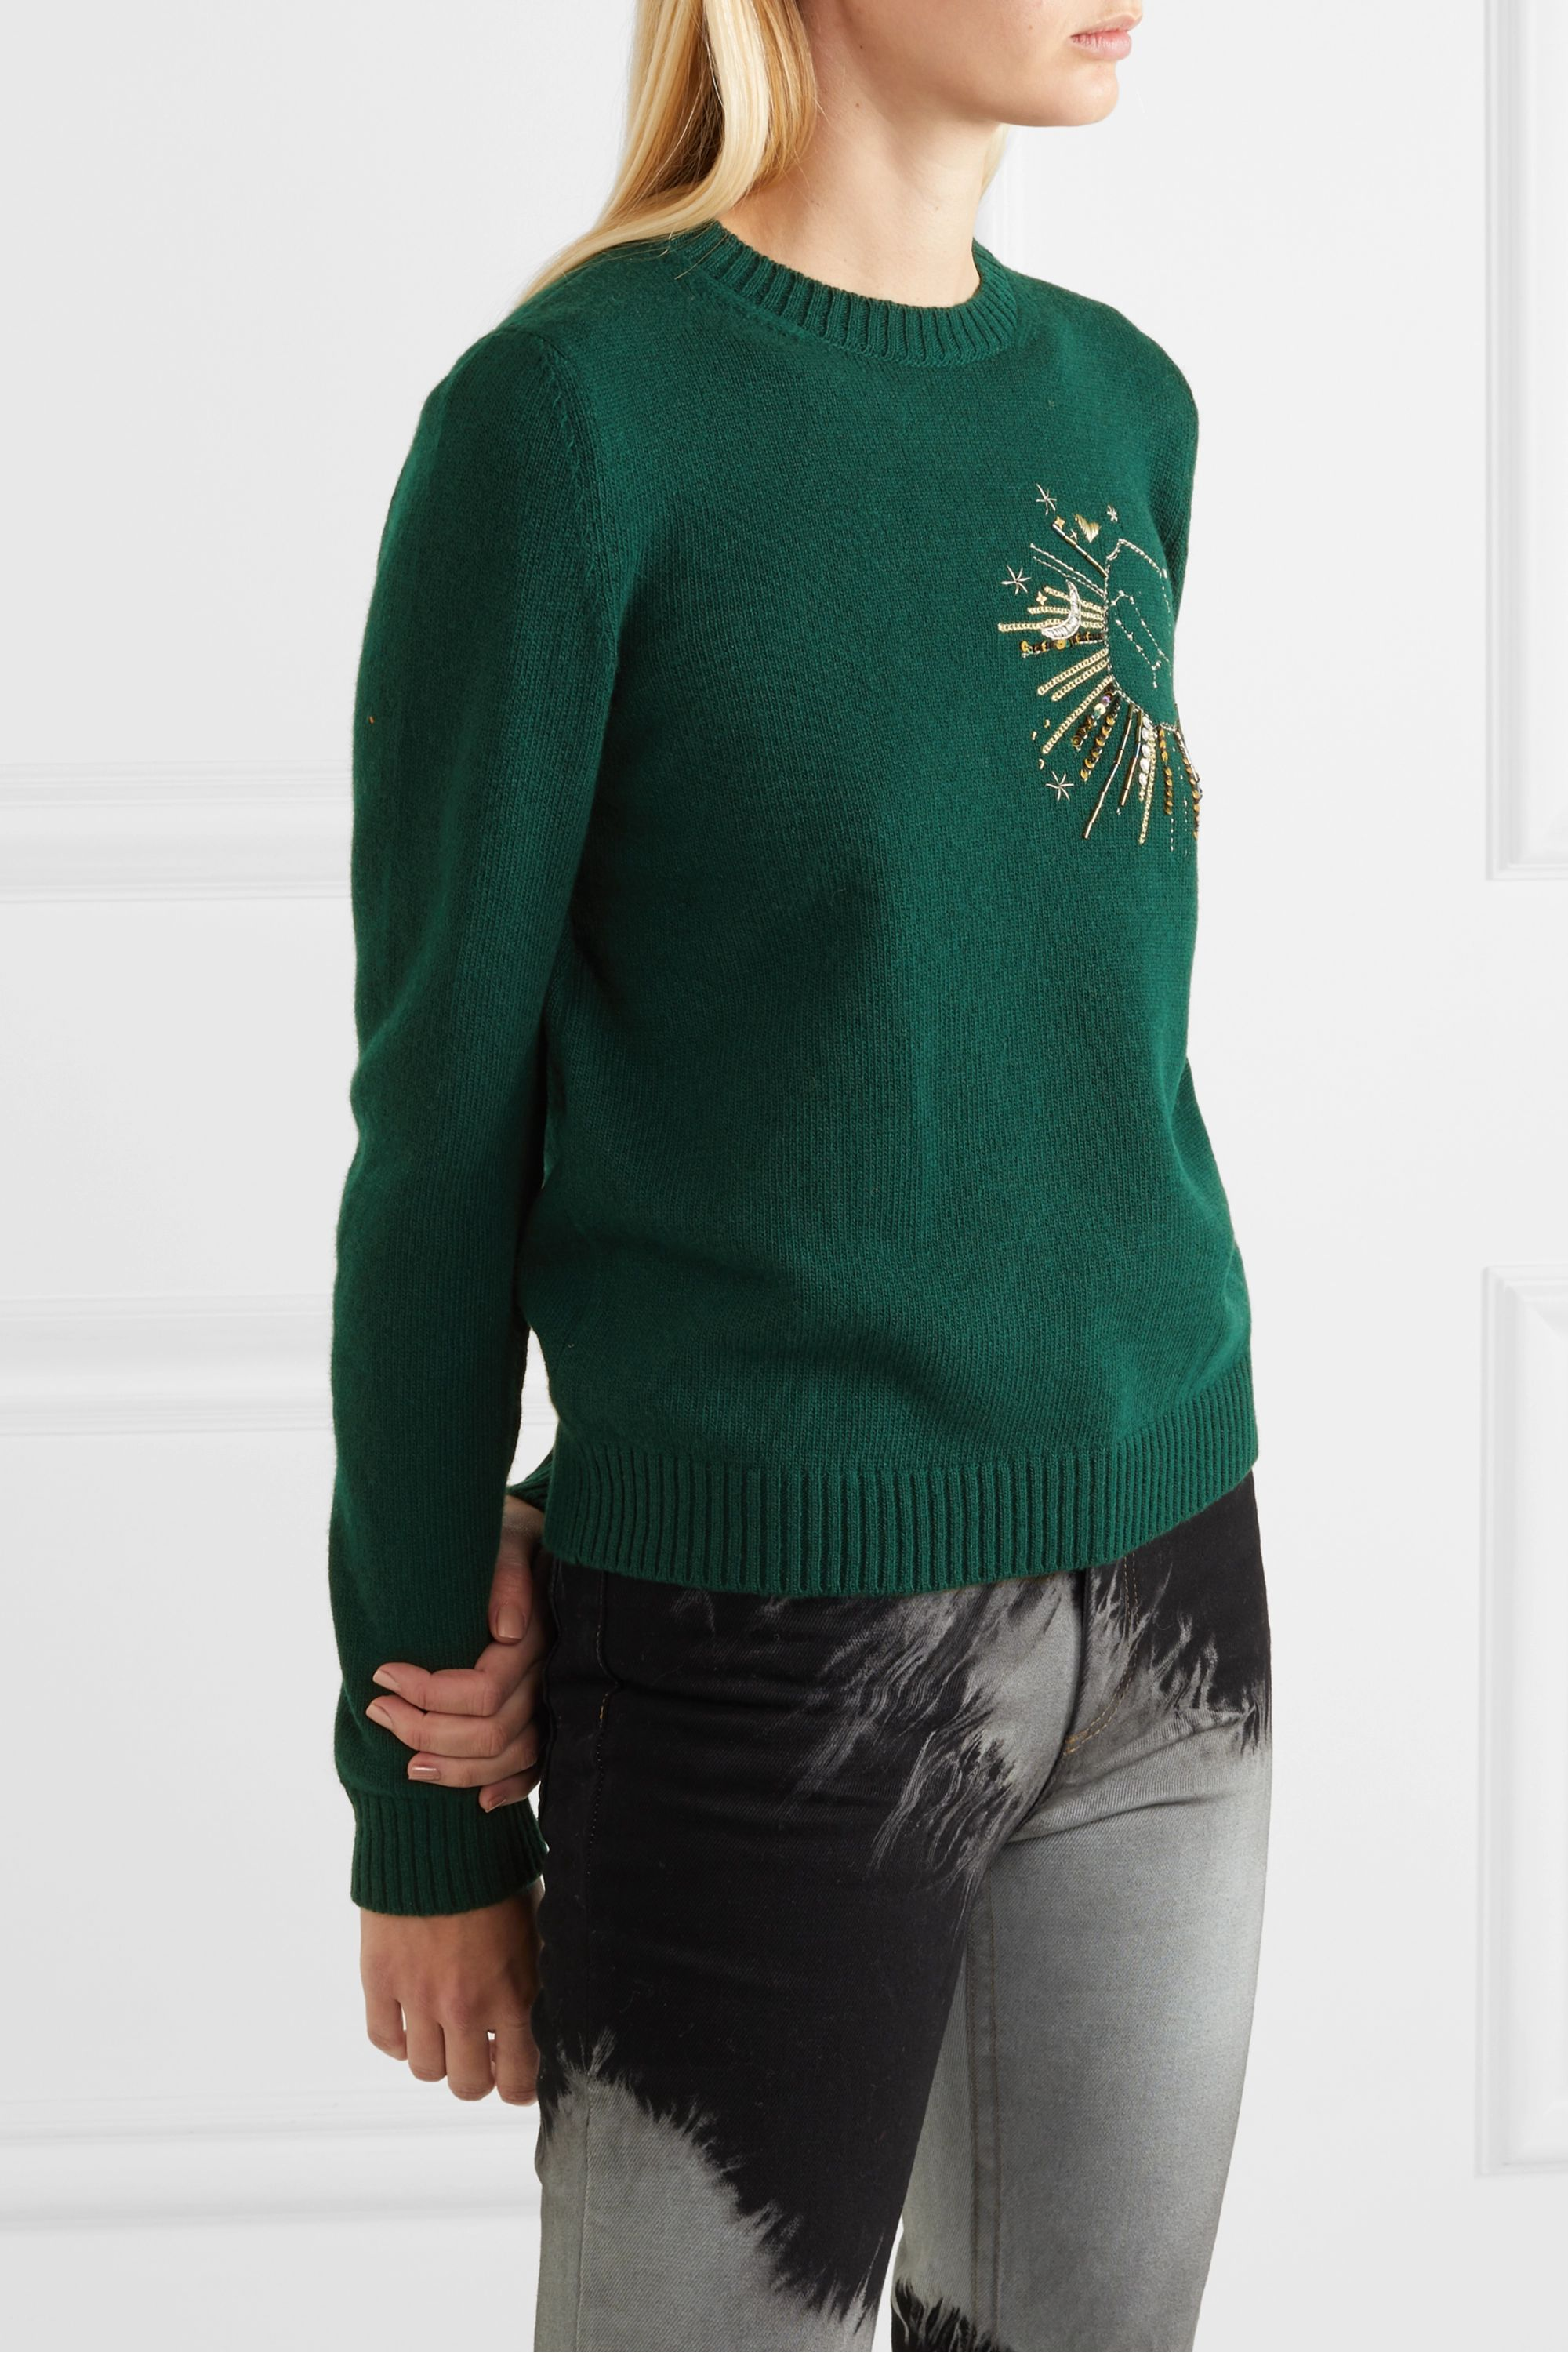 Le Lion Gemini embellished embroidered wool sweater